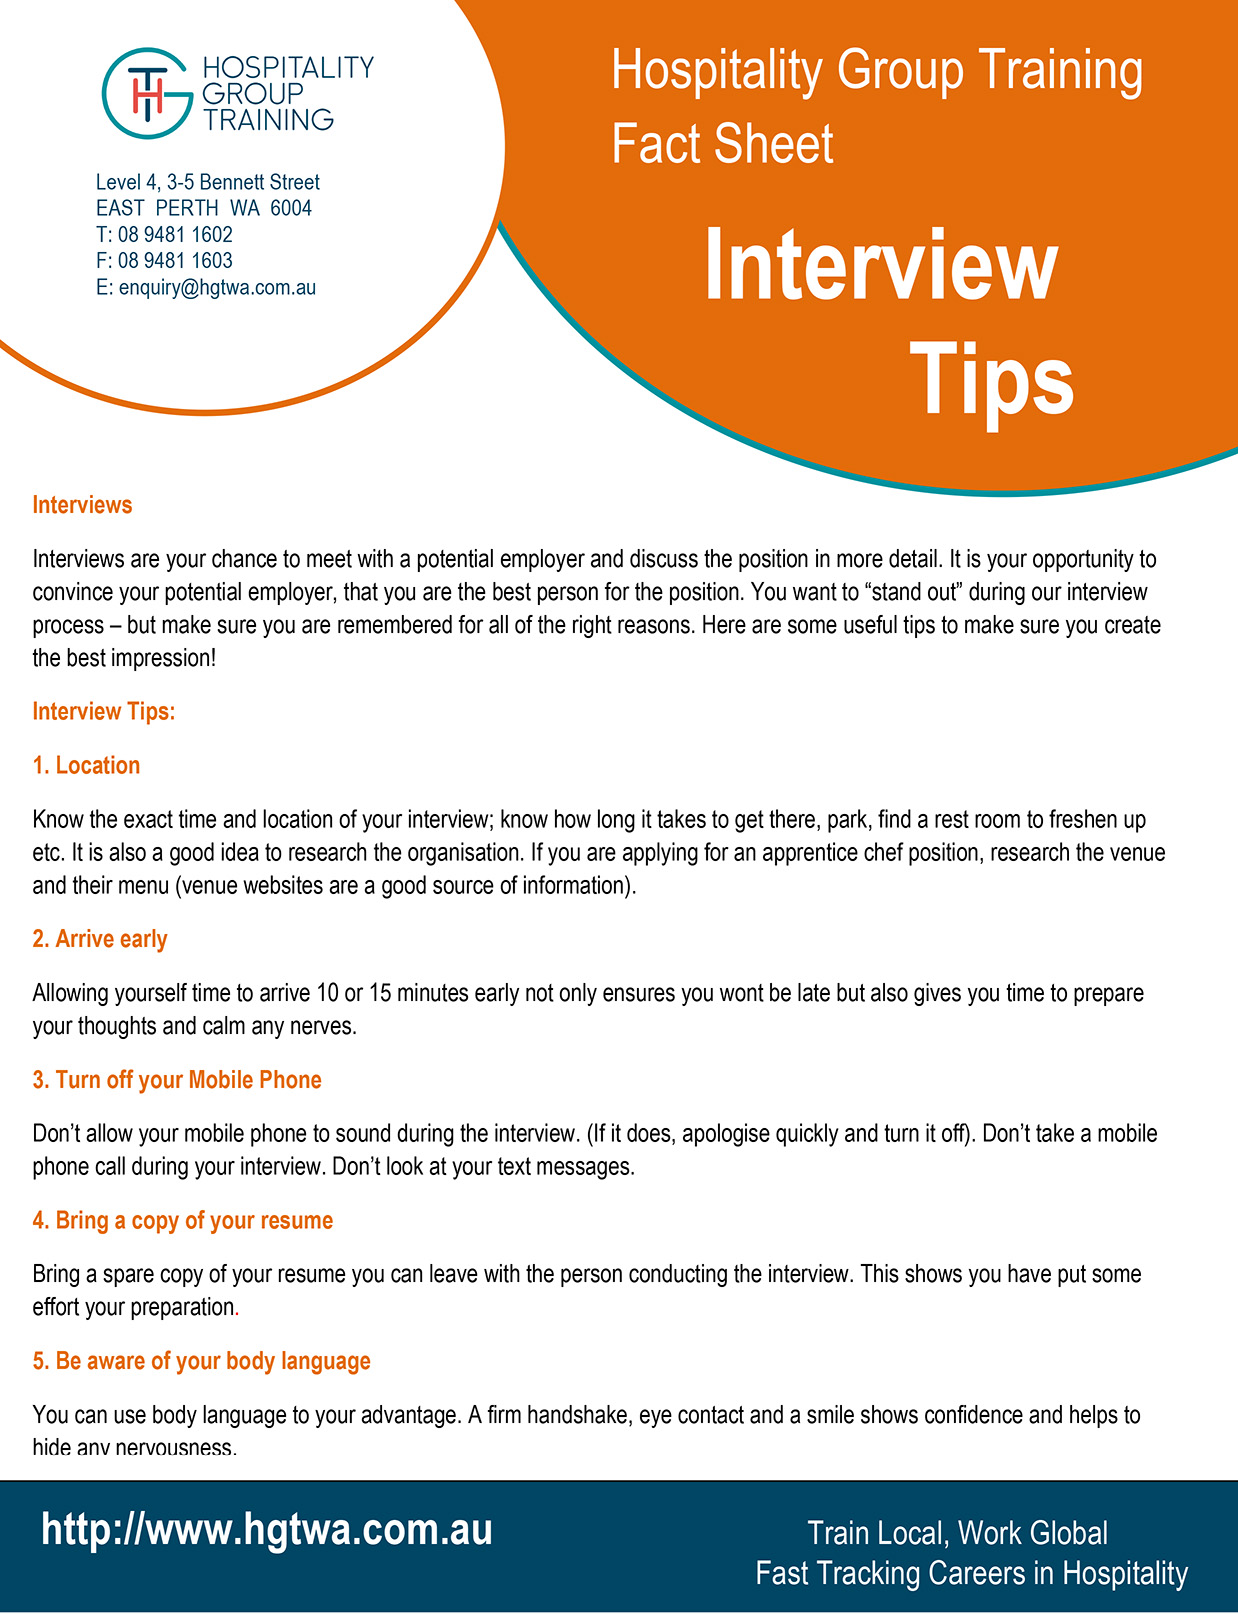 job seeker fact sheets hospitality group training interview tips 2 page guide to interview etiquette